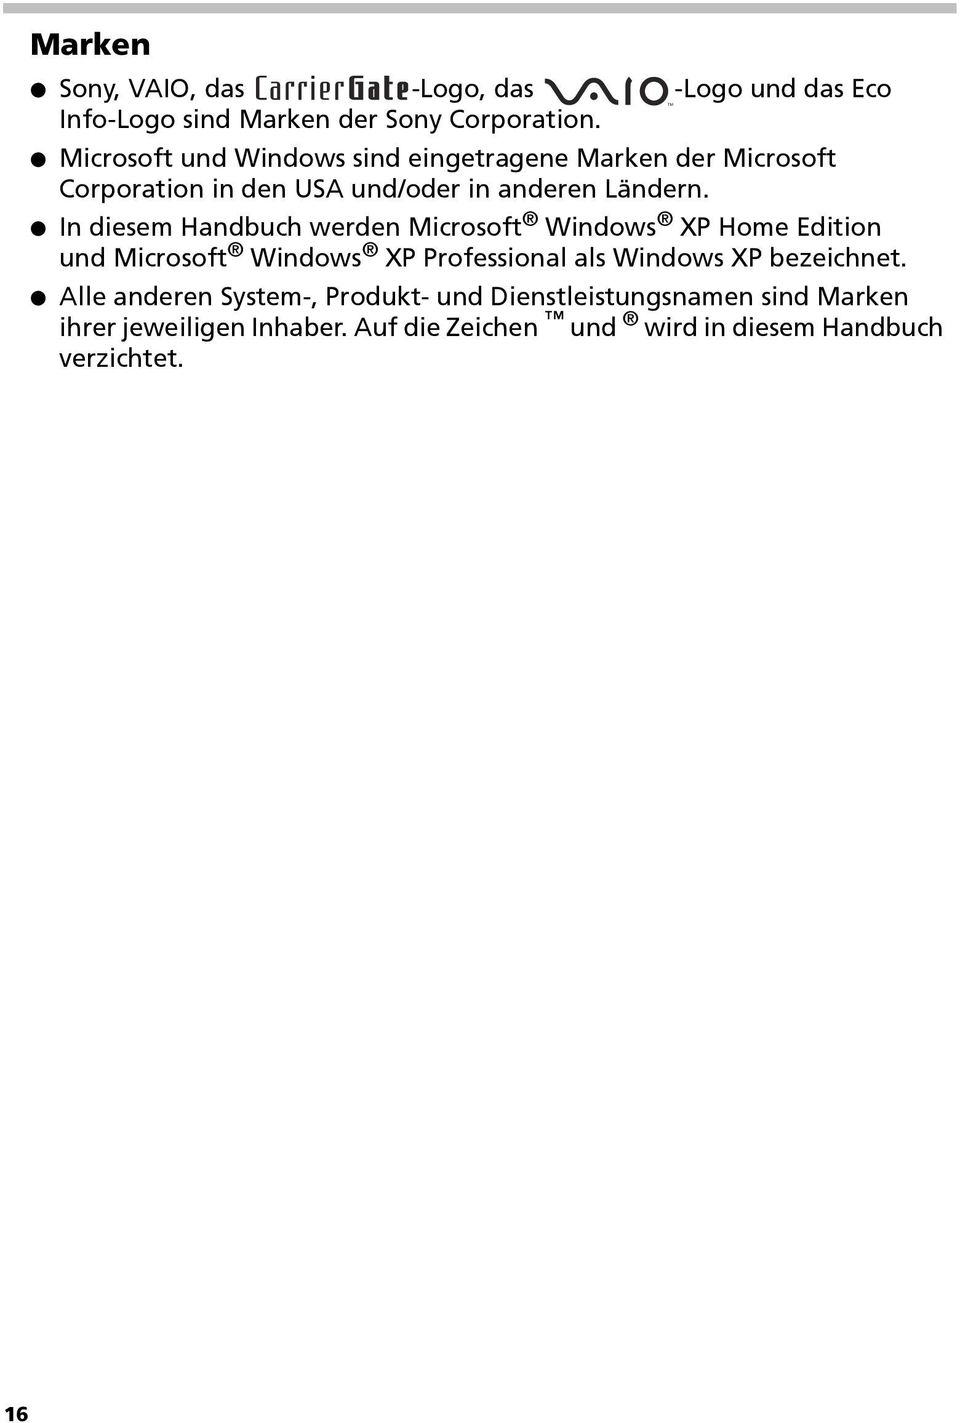 In diesem Handbuch werden Microsoft Windows XP Home Edition und Microsoft Windows XP Professional als Windows XP